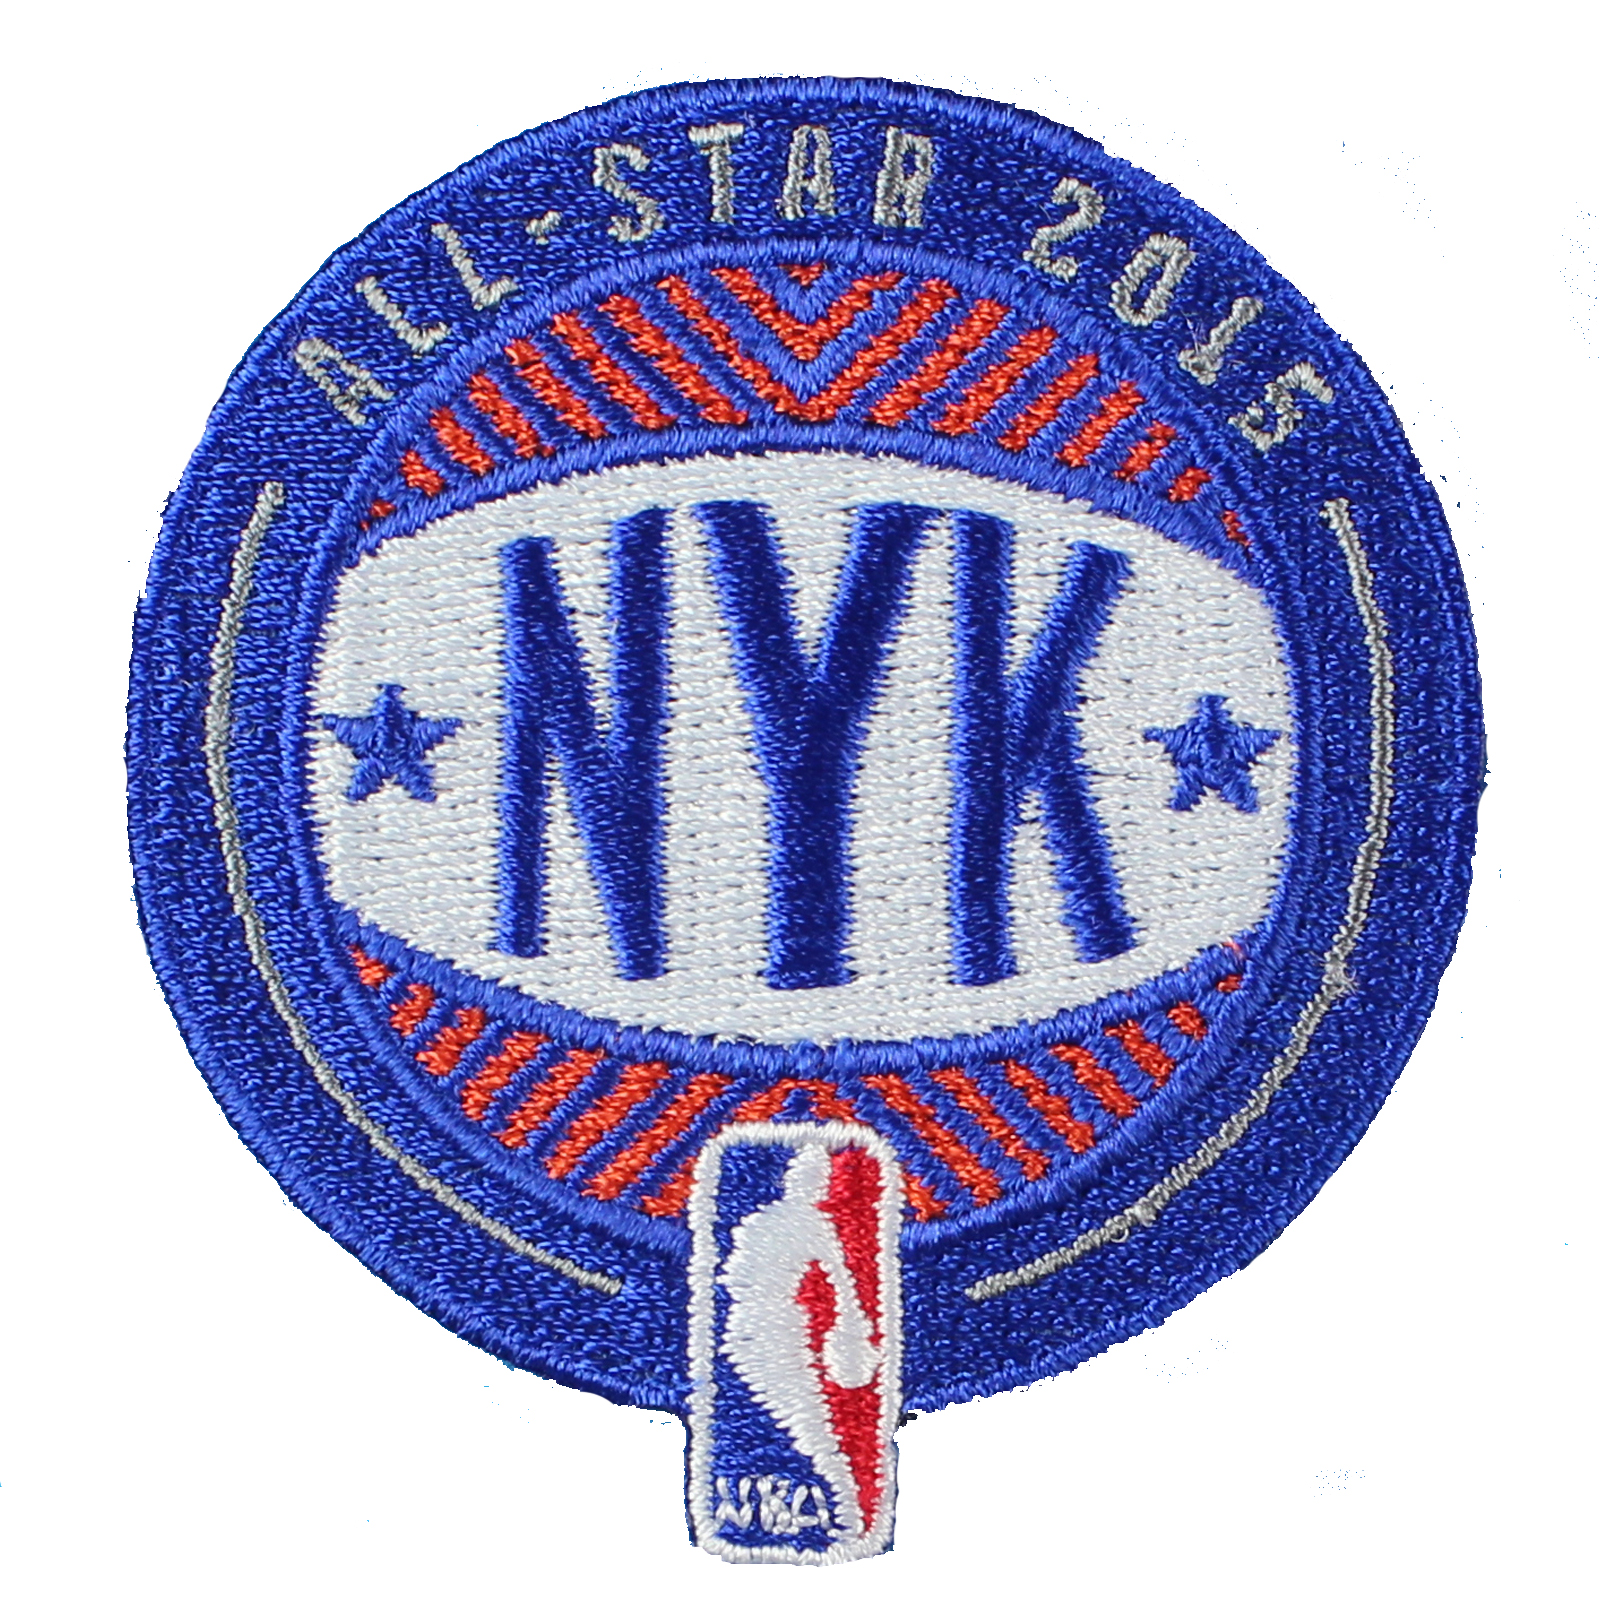 2015 NBA All Star Game Patch in New York City Knicks Jersey Patch (Madison Square Garden)